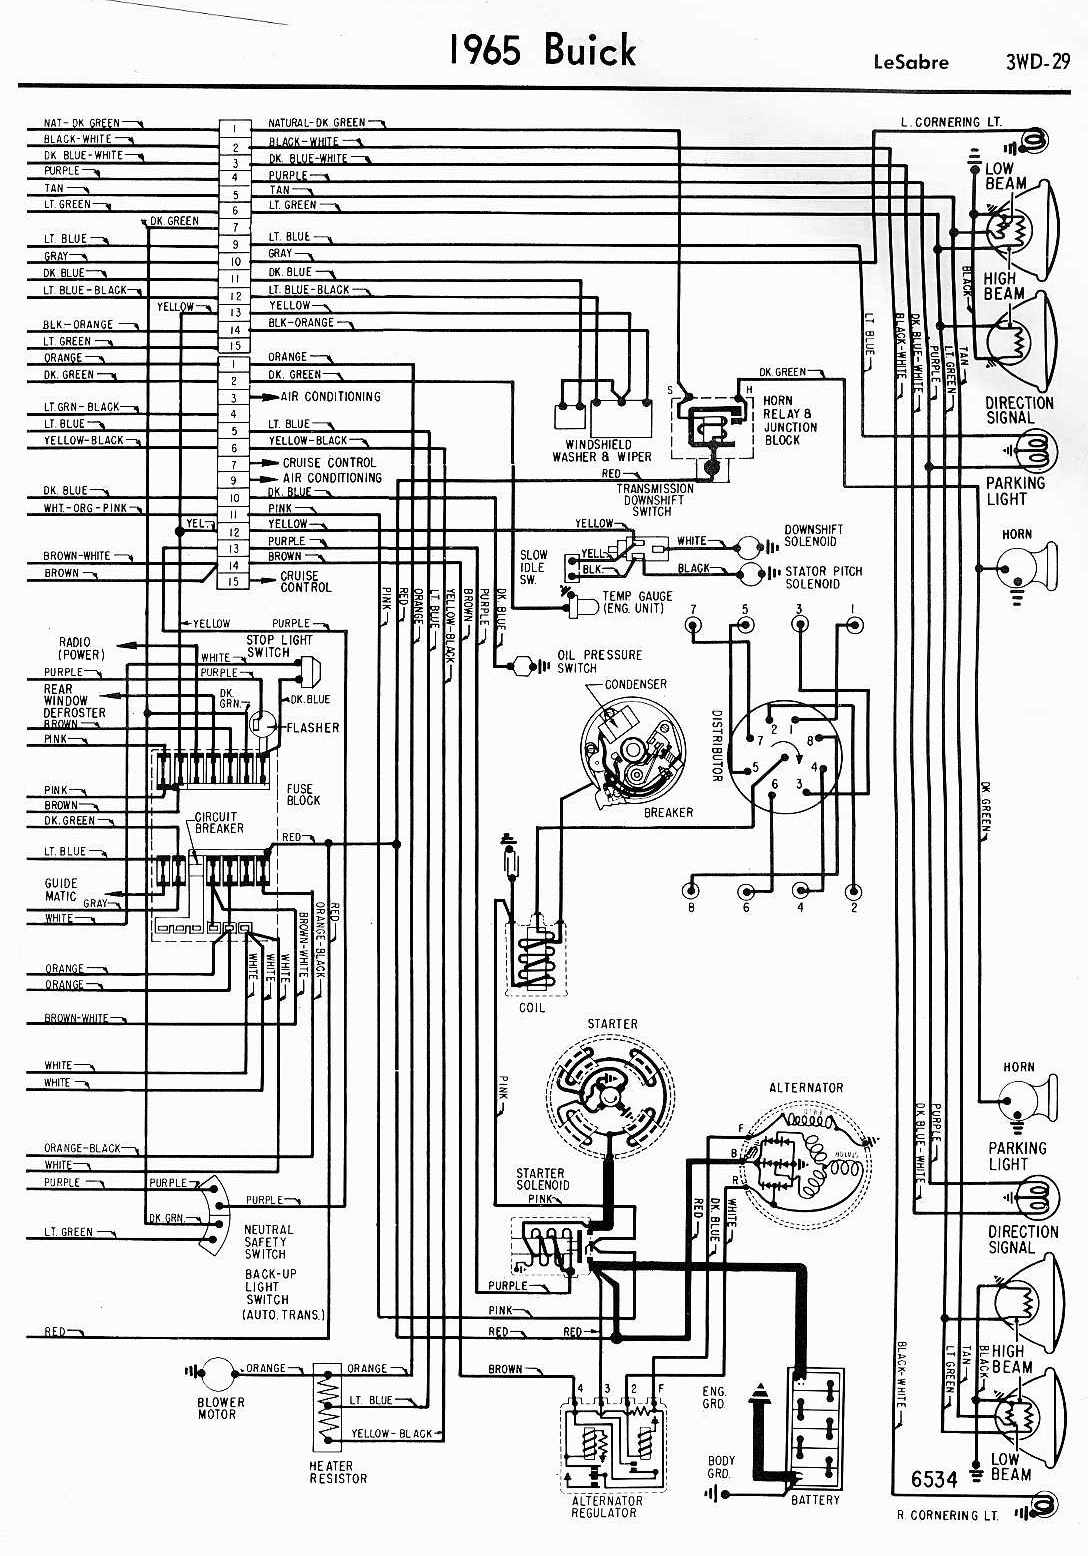 small resolution of 1978 buick wiring diagram wiring diagrams scematic1974 buick apollo wiring diagram wiring diagram todays 1995 buick